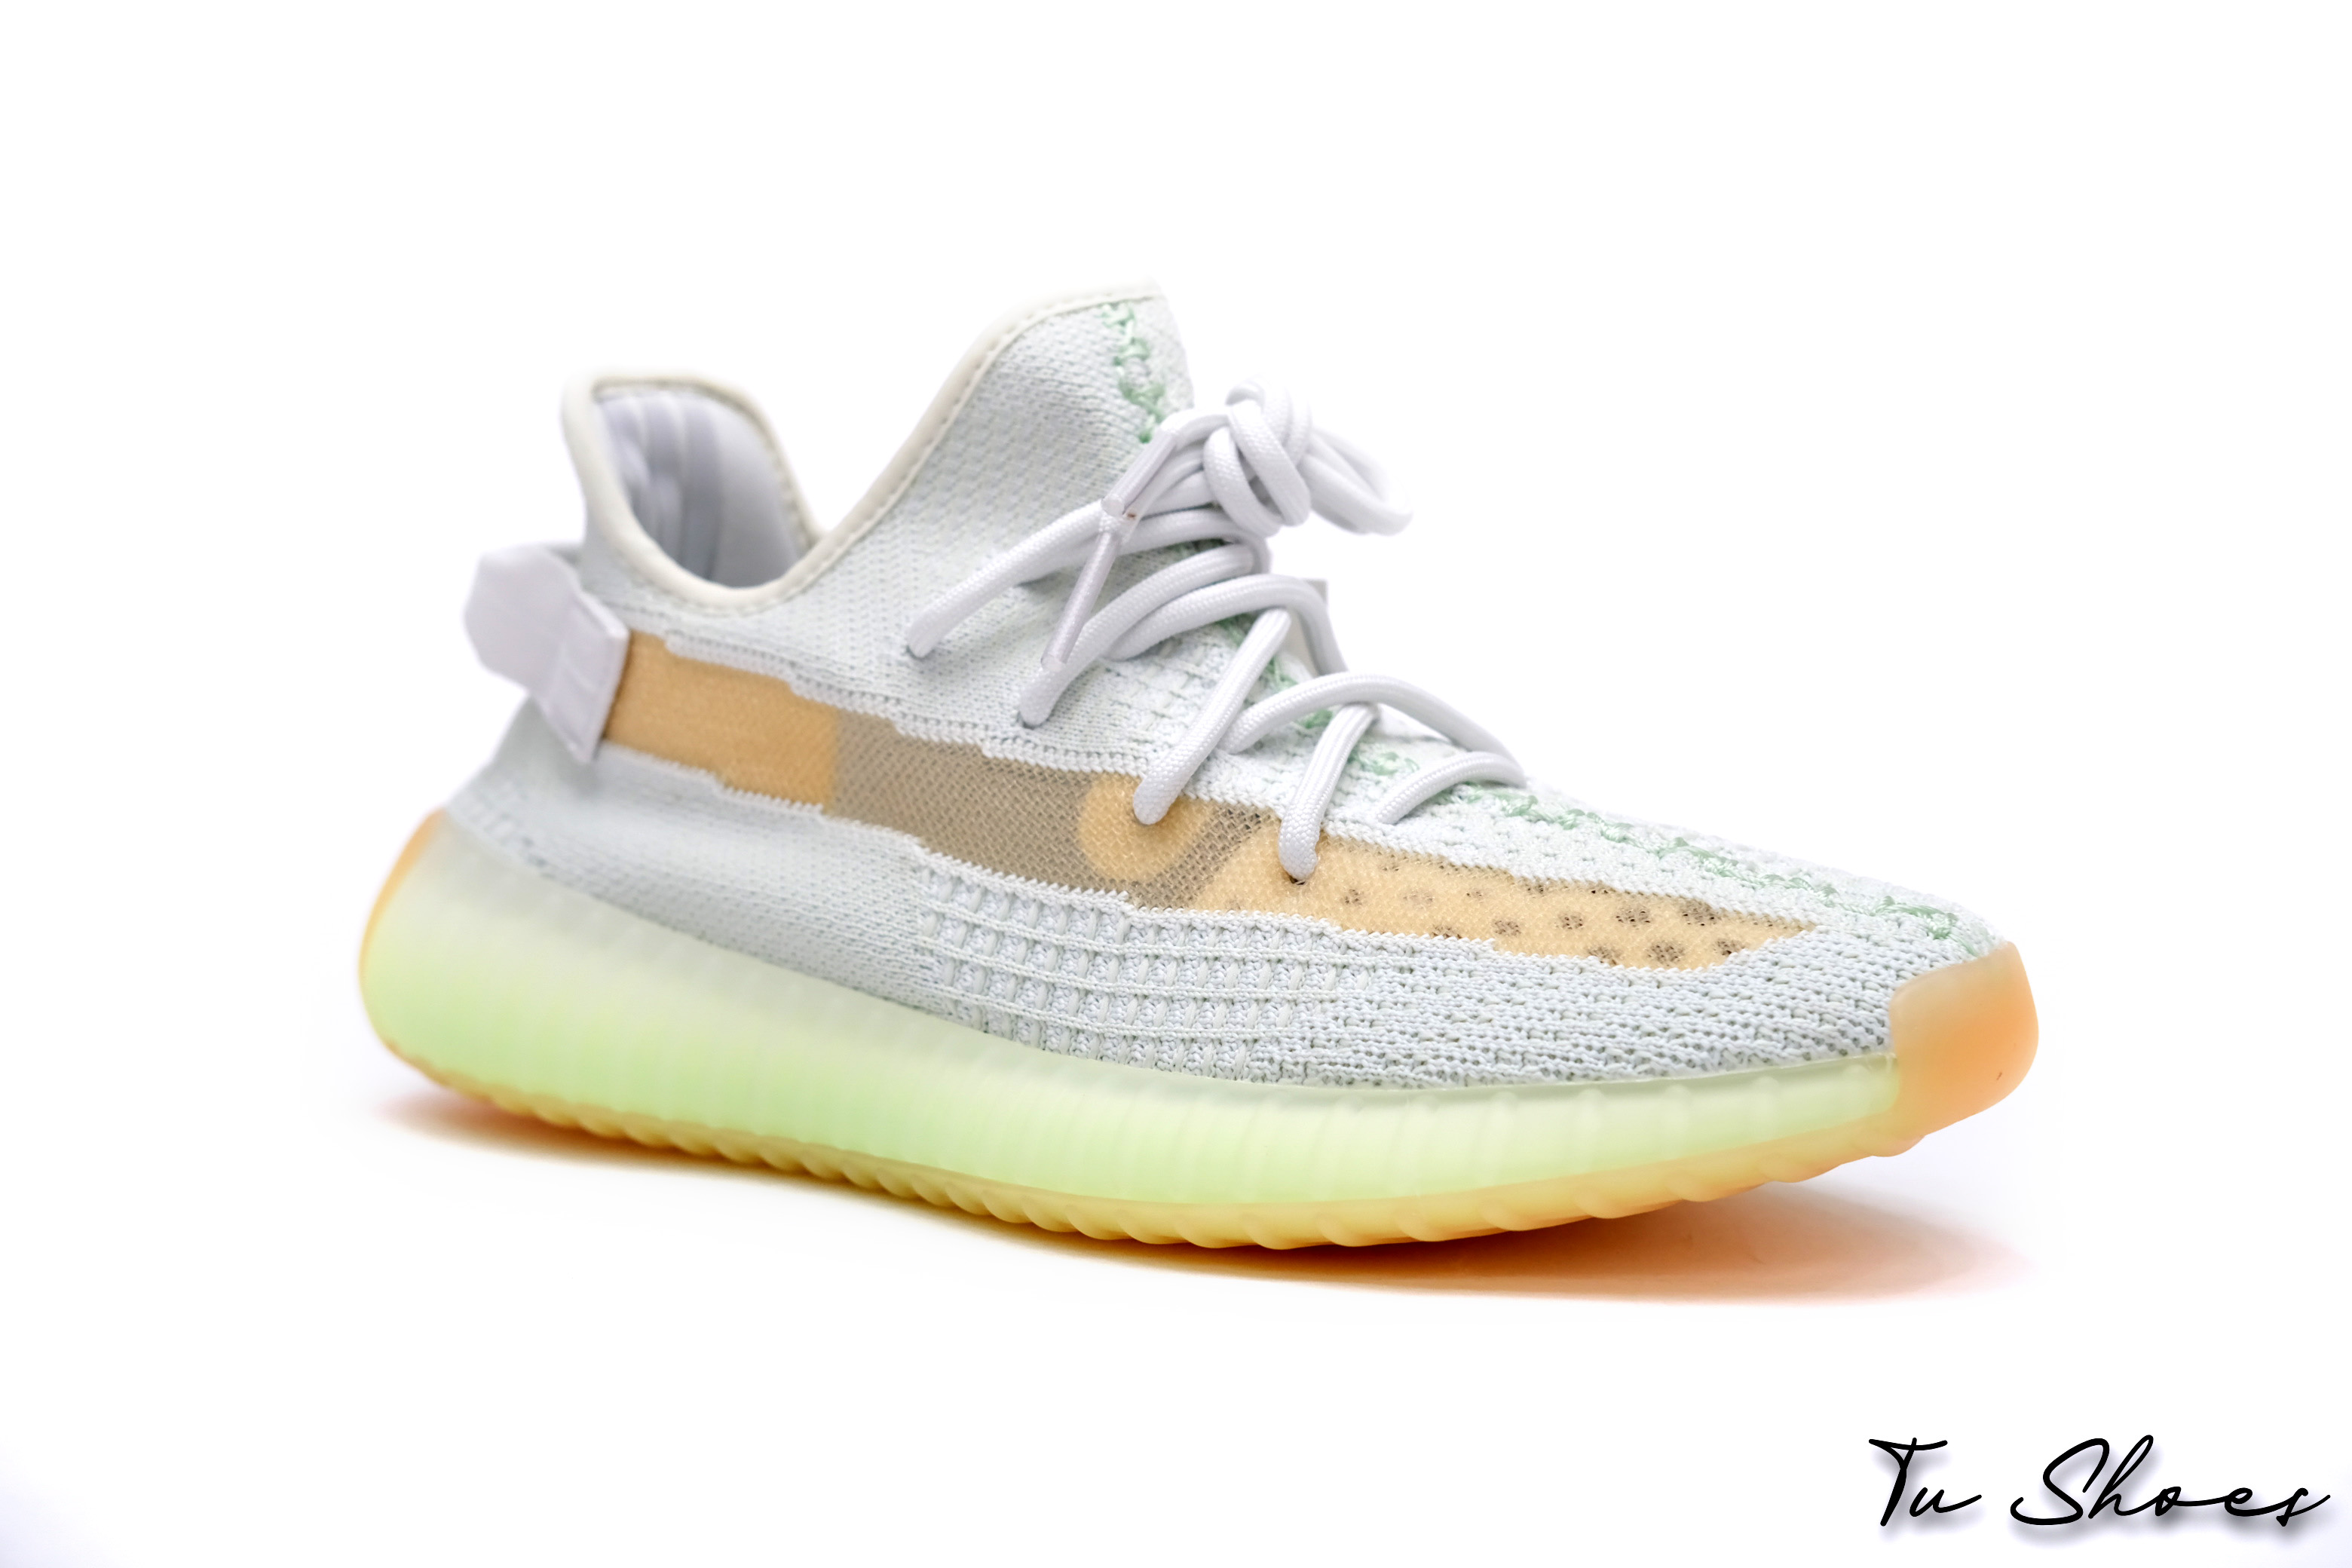 yeezy-boost-350-v2-hyperspace-1-1